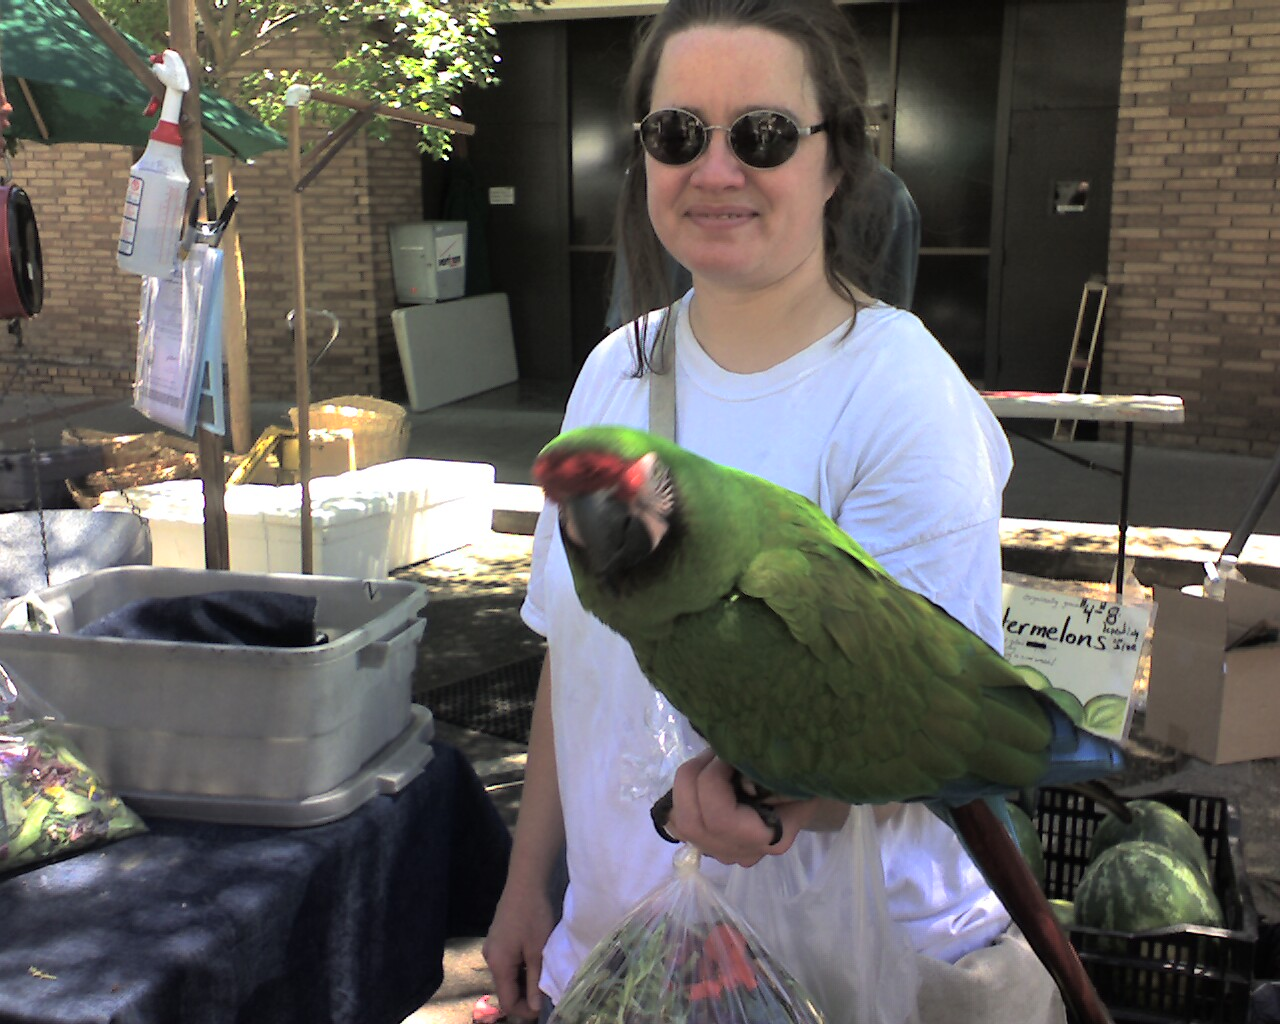 Farmers mkt bird - Visit the Los Gatos Farmer's Market!